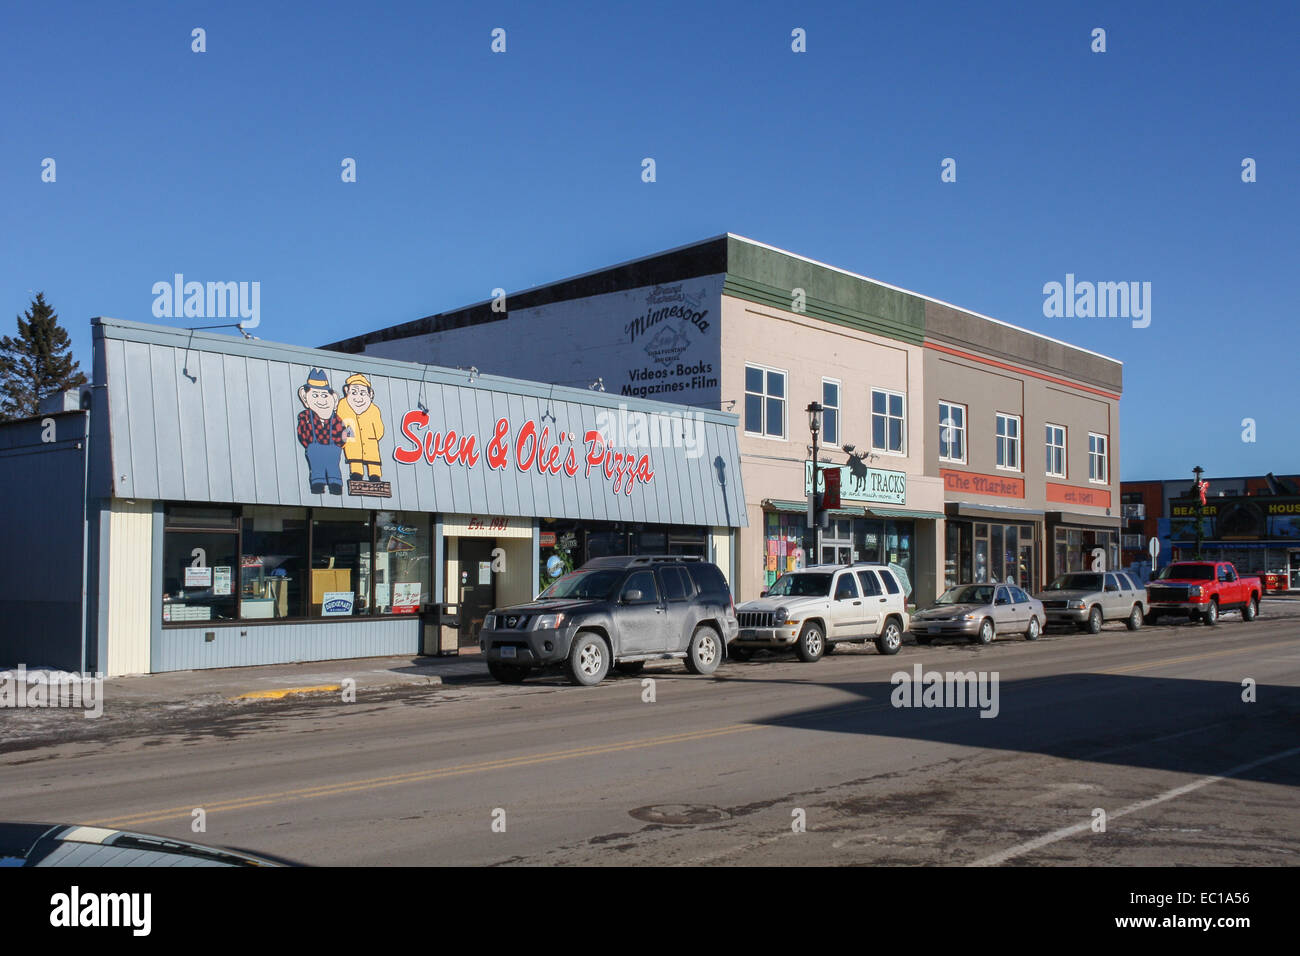 Grand Marais, Minnesota, United States. Sven and Ole's Pizza place in town - Stock Image